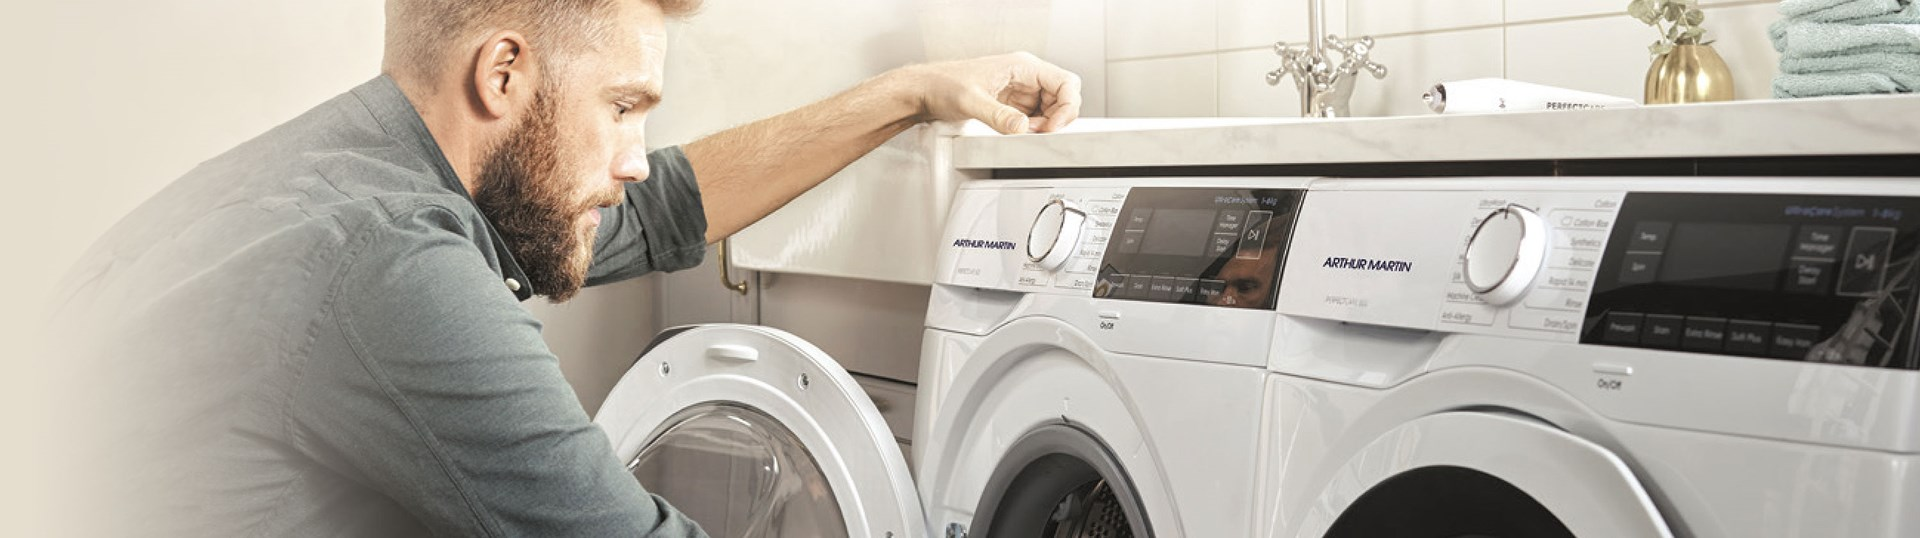 arthur-header-washing-machine.jpg